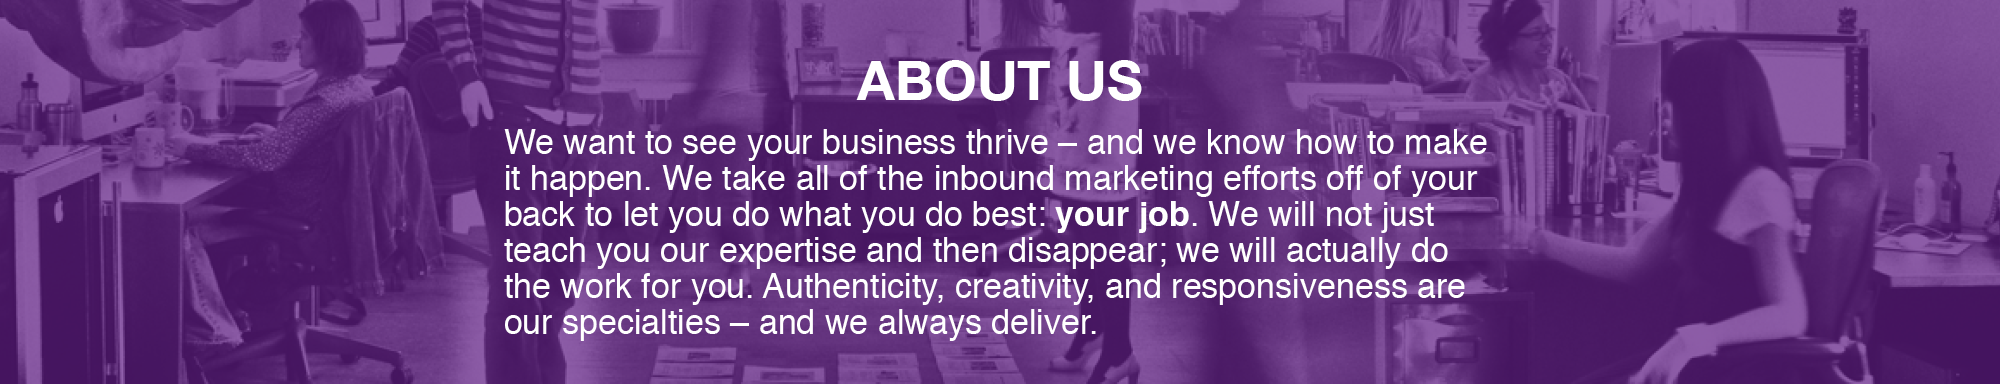 about us, Responsive Inbound Marketing, Boston inbound marketing agency